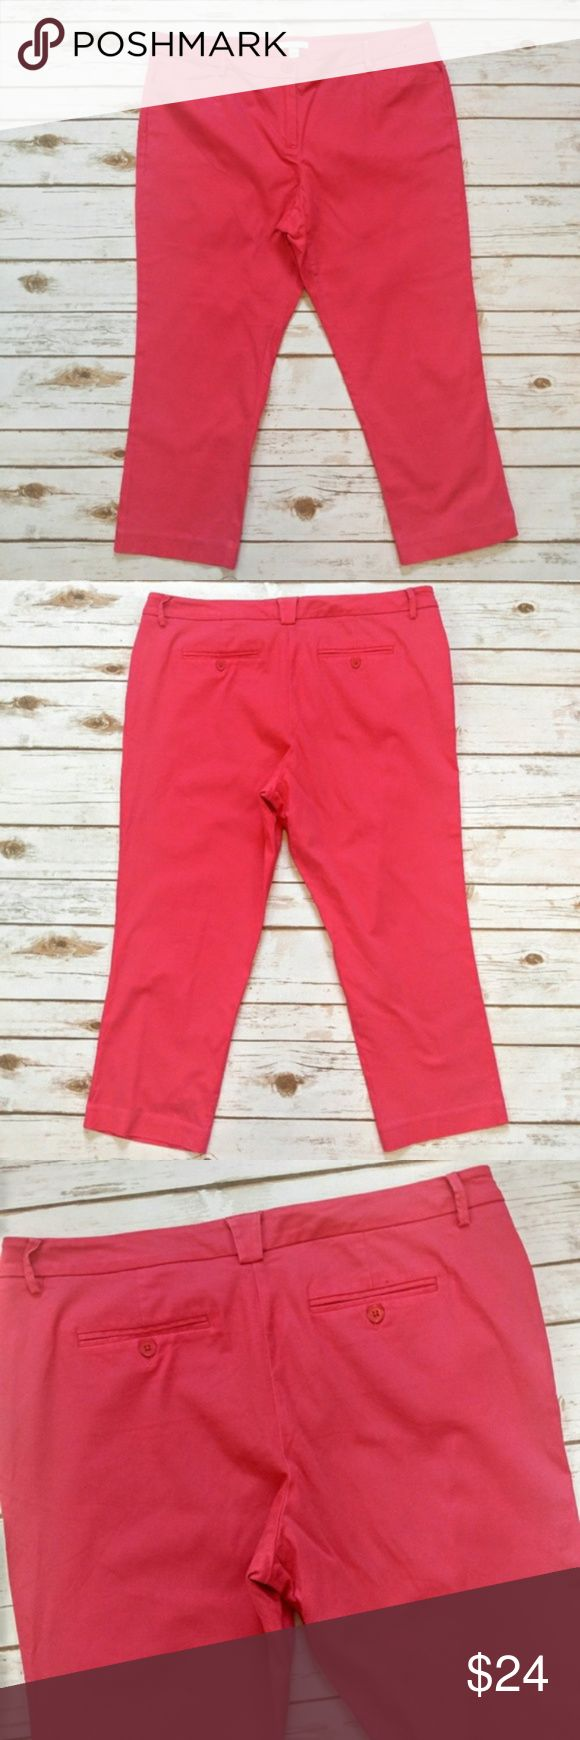 "New York & Company Pink Capri Khakis New York & Company Pink Capri Khakis  Size 14 in excellent condition. These are a very pink red color. 19"" waist 23.5"" inseam. Please let me know if you have any questions. I ship the same day as long as the post office is still open. Have a great day, thanks for checking out my closet and happy poshing! New York & Company Pants Capris"